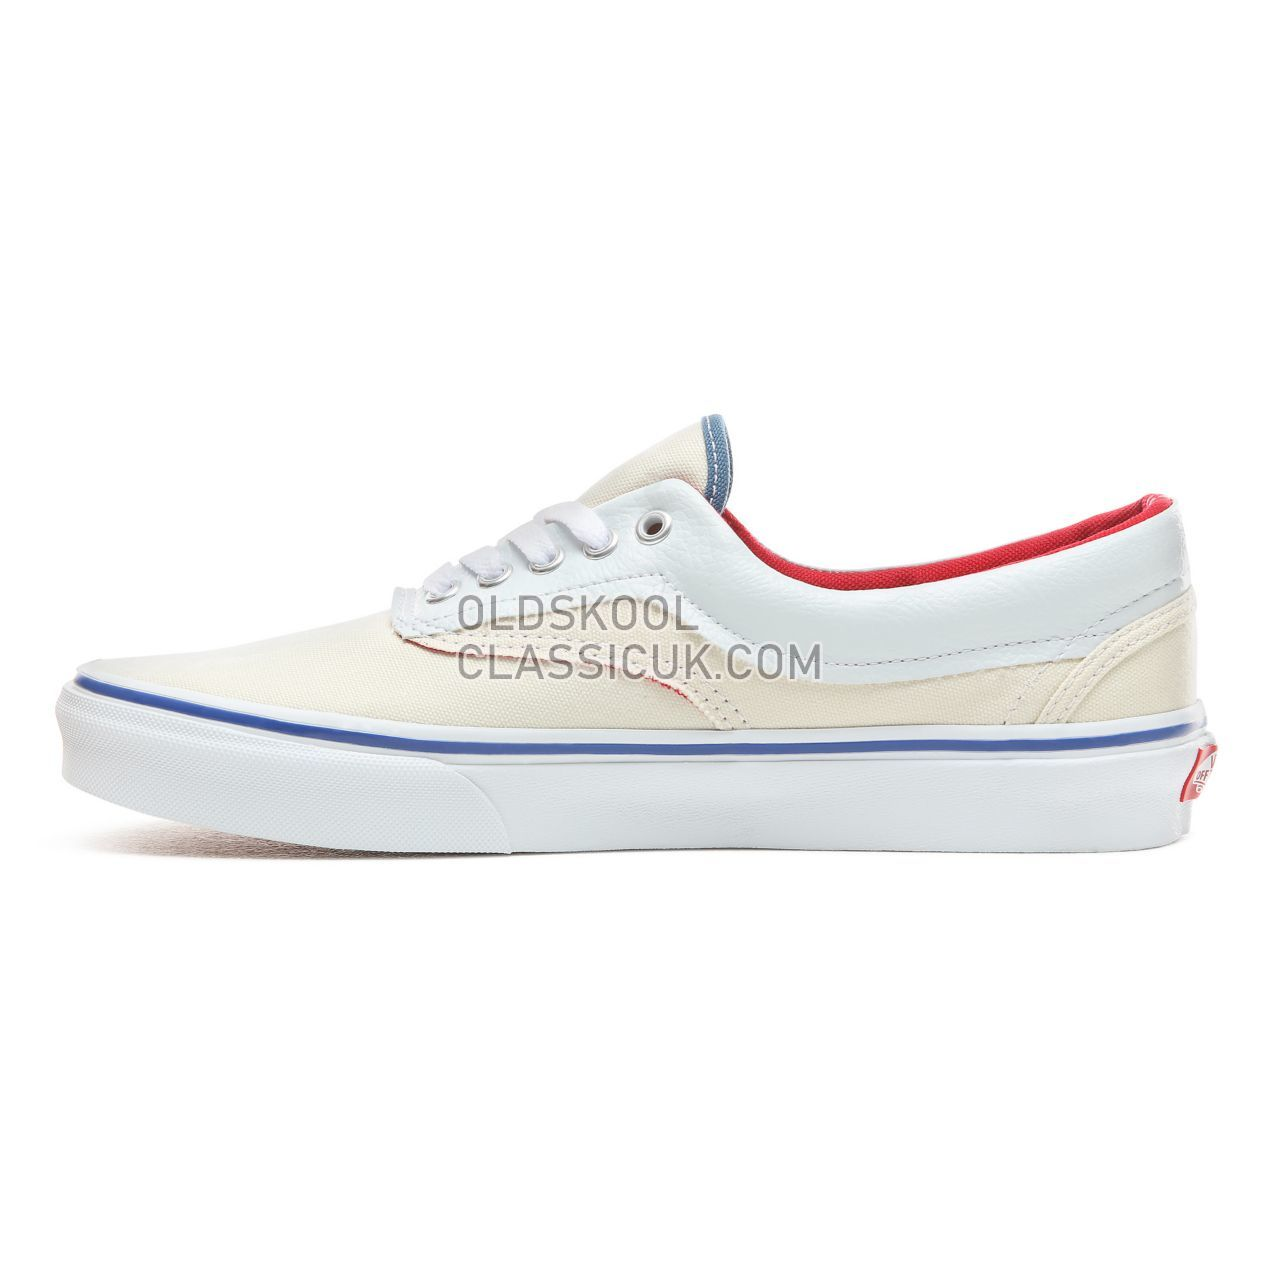 Vans Outside In Era Sneakers Mens (Outside In) Natural/Stv Navy/Red VN0A38FRVME Shoes